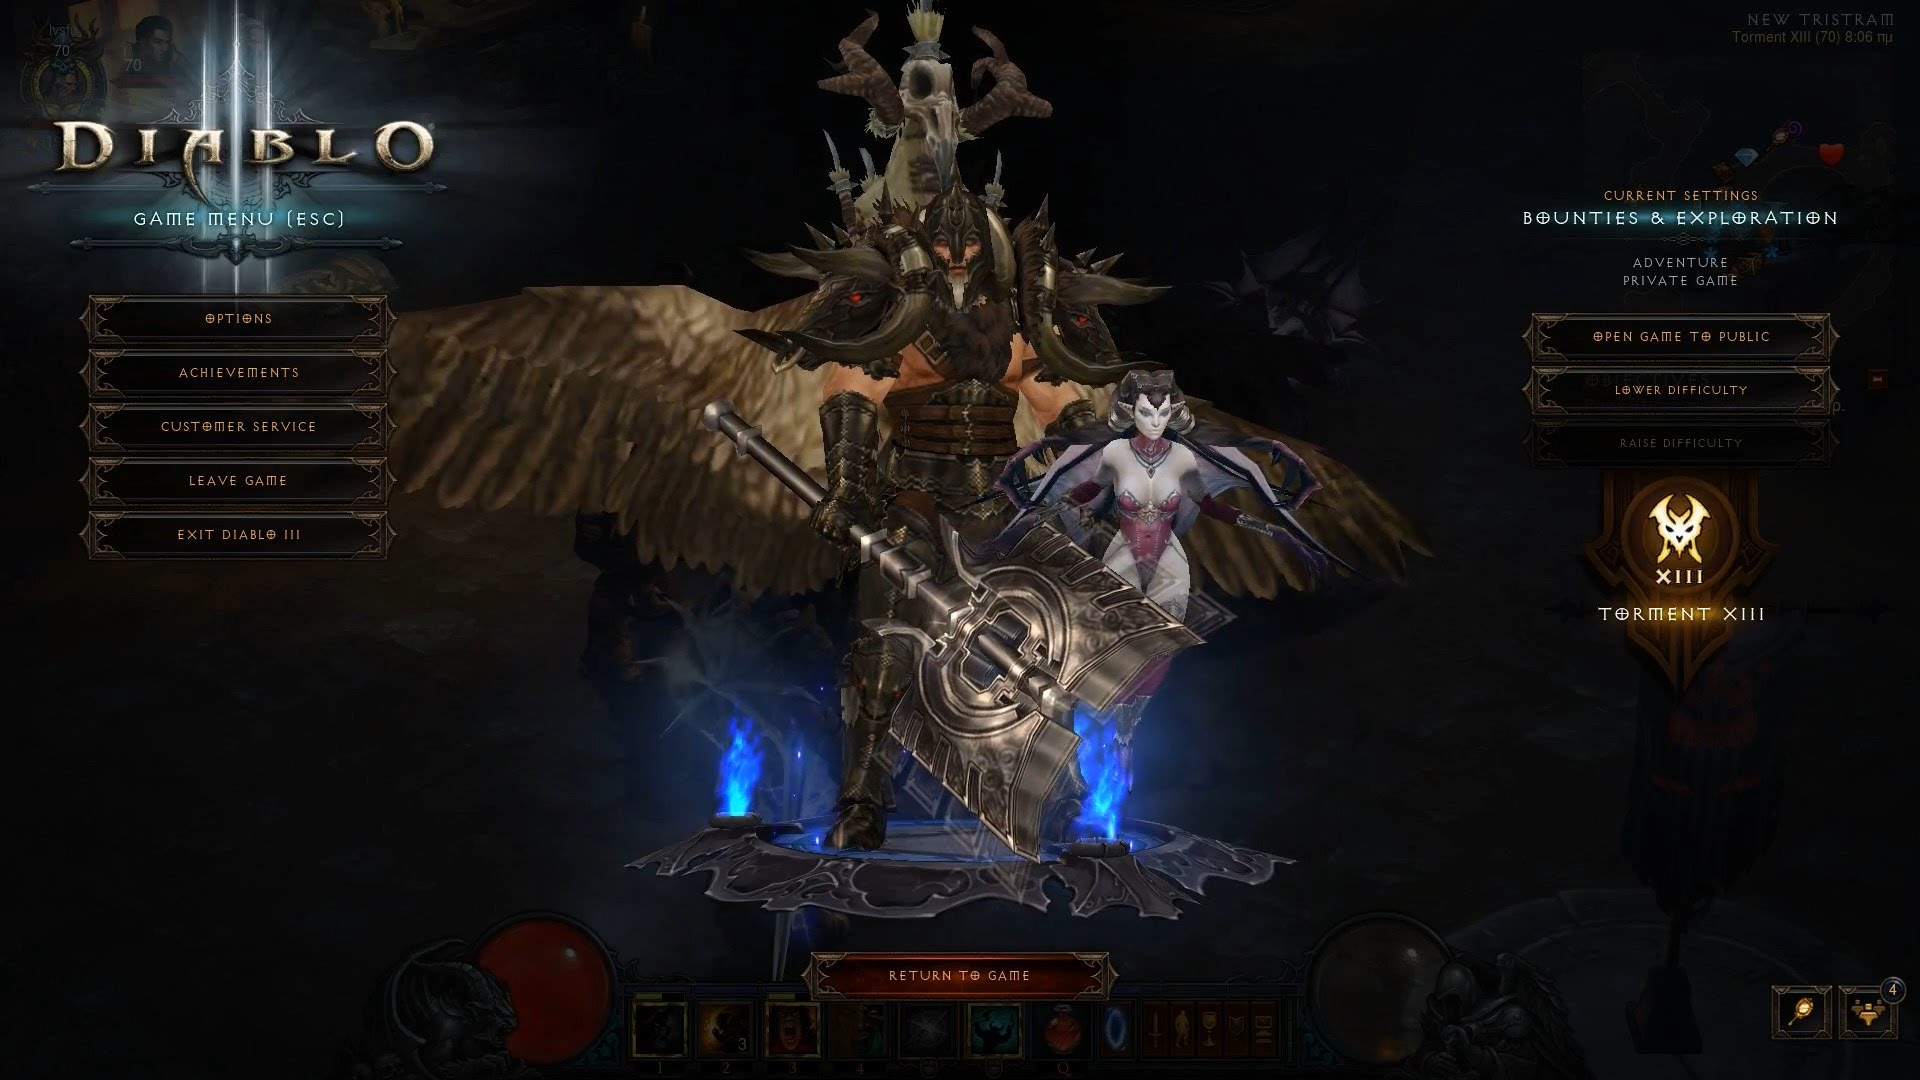 how to get wings in diablo 3 xbox one